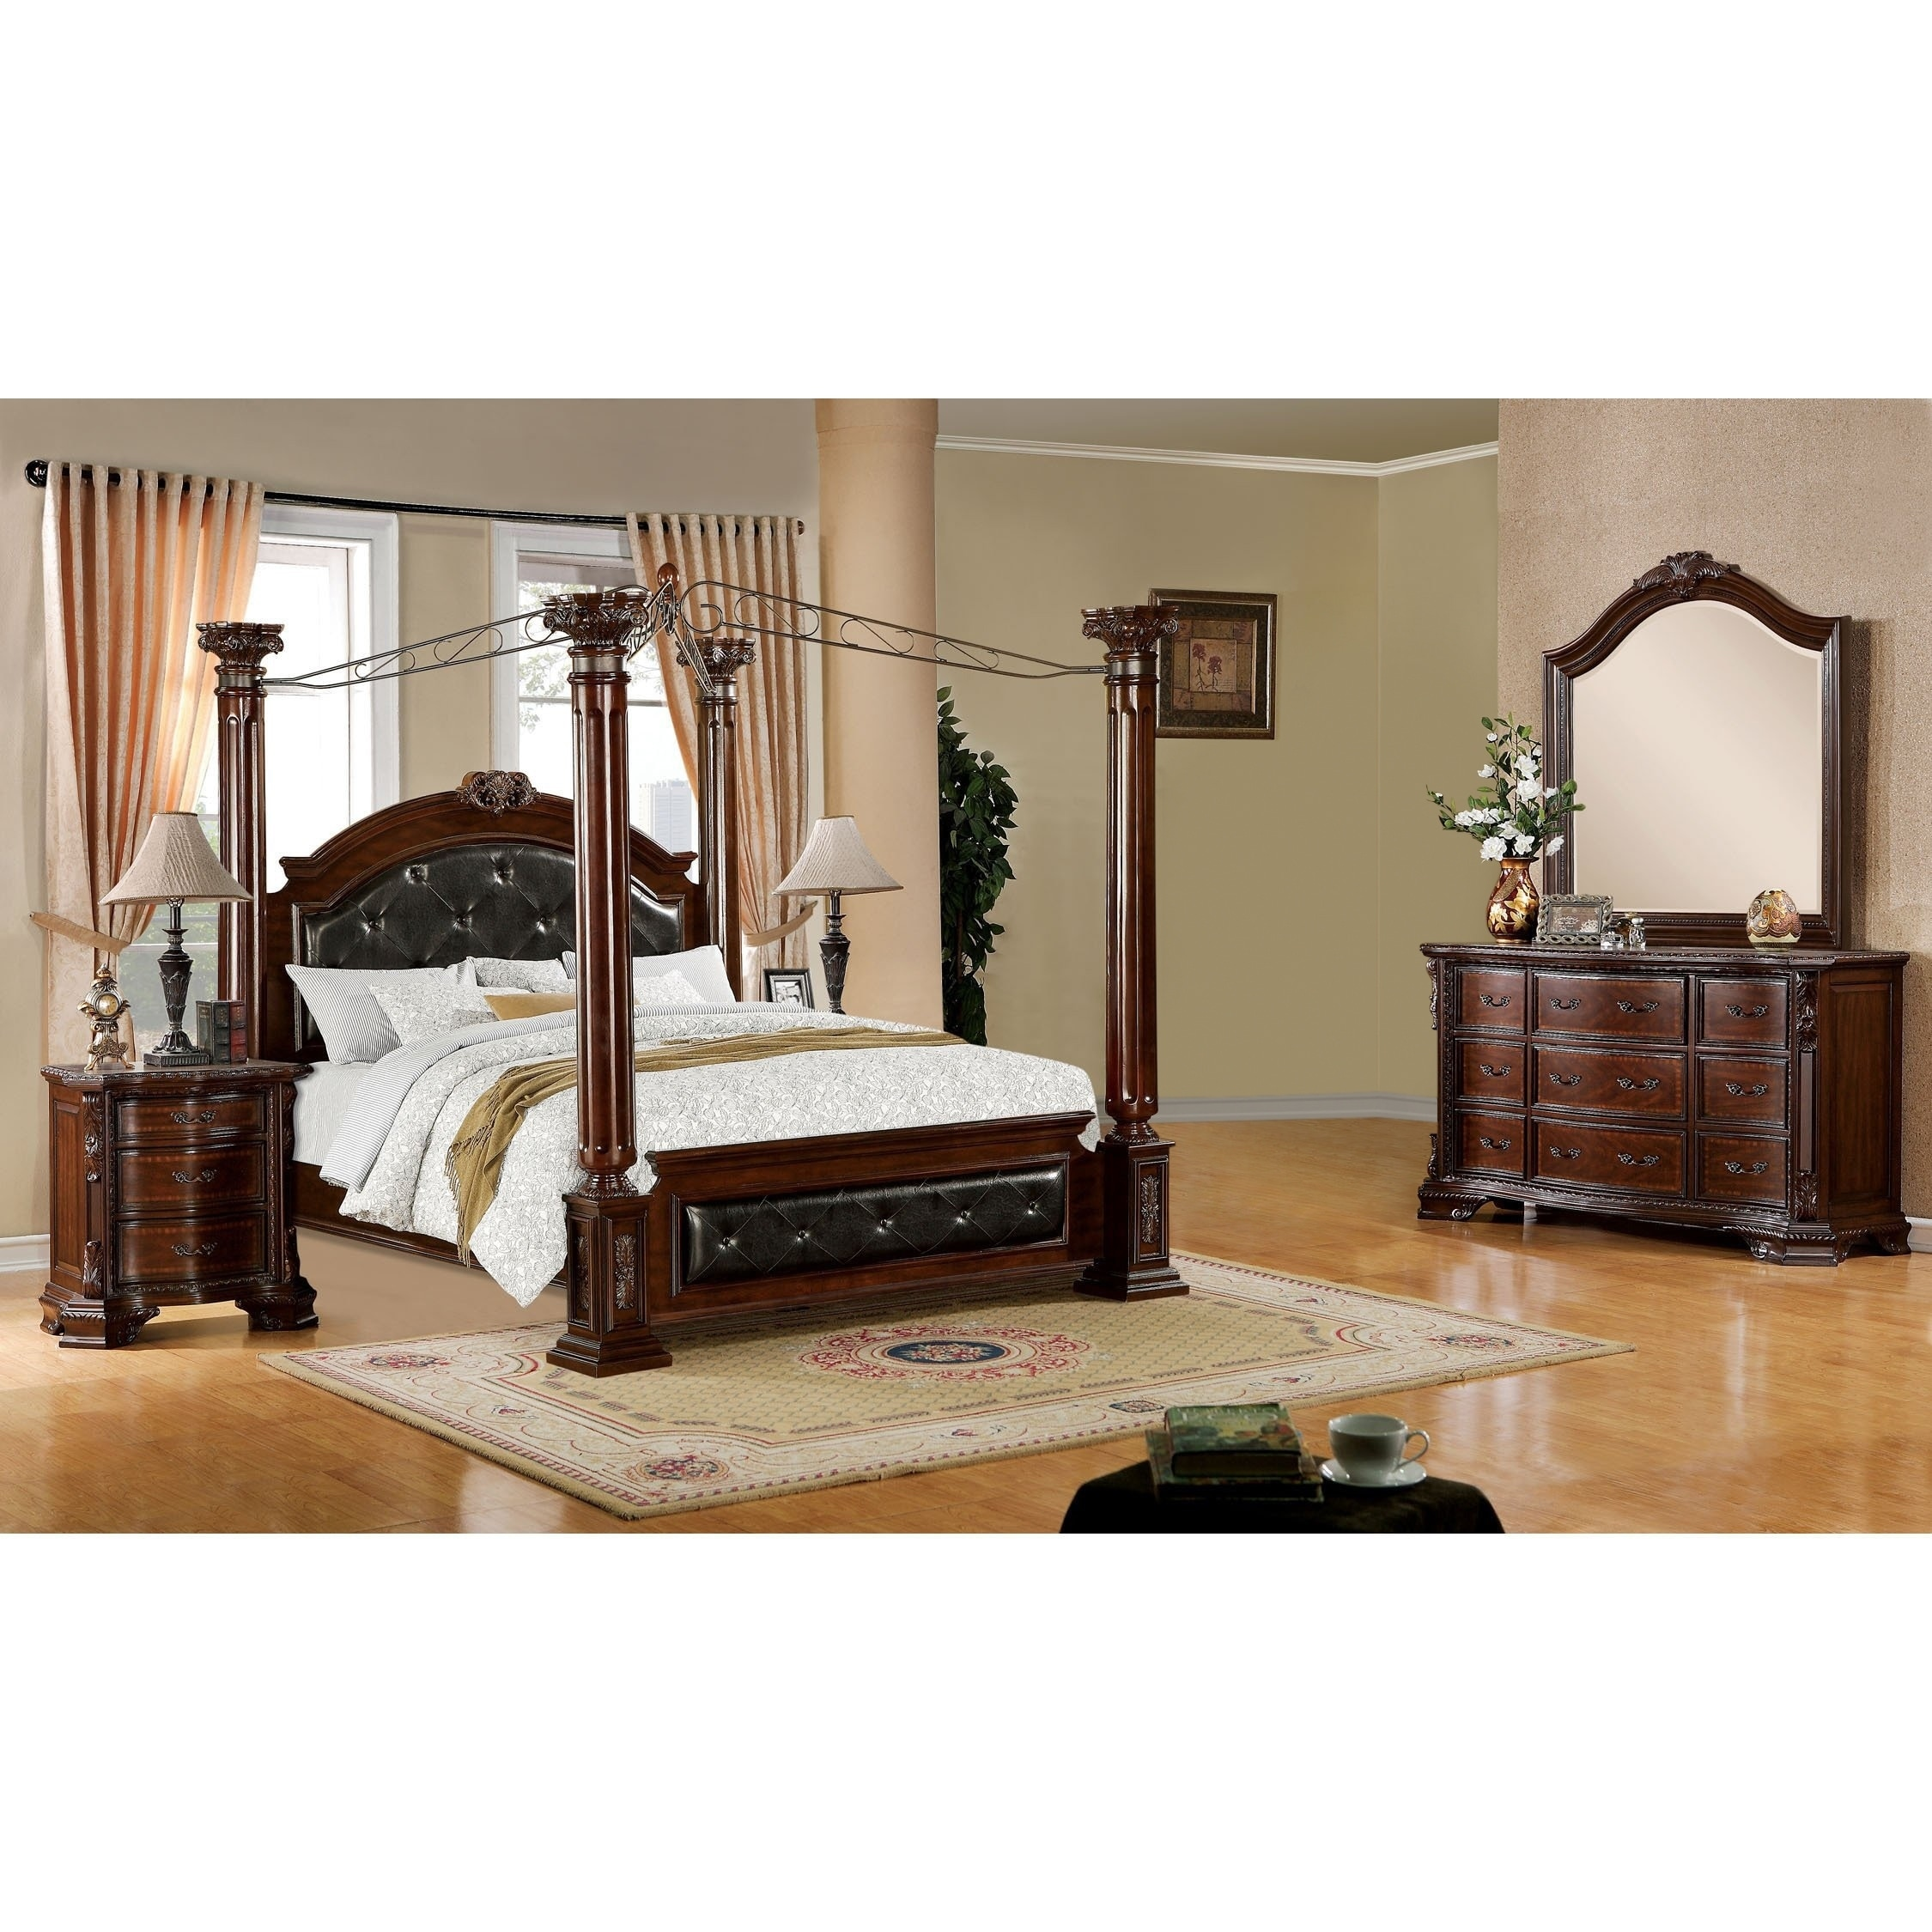 Shop Furniture Of America Cane Traditional Cherry 4 Piece Canopy Bedroom Set On Sale Overstock 9260266